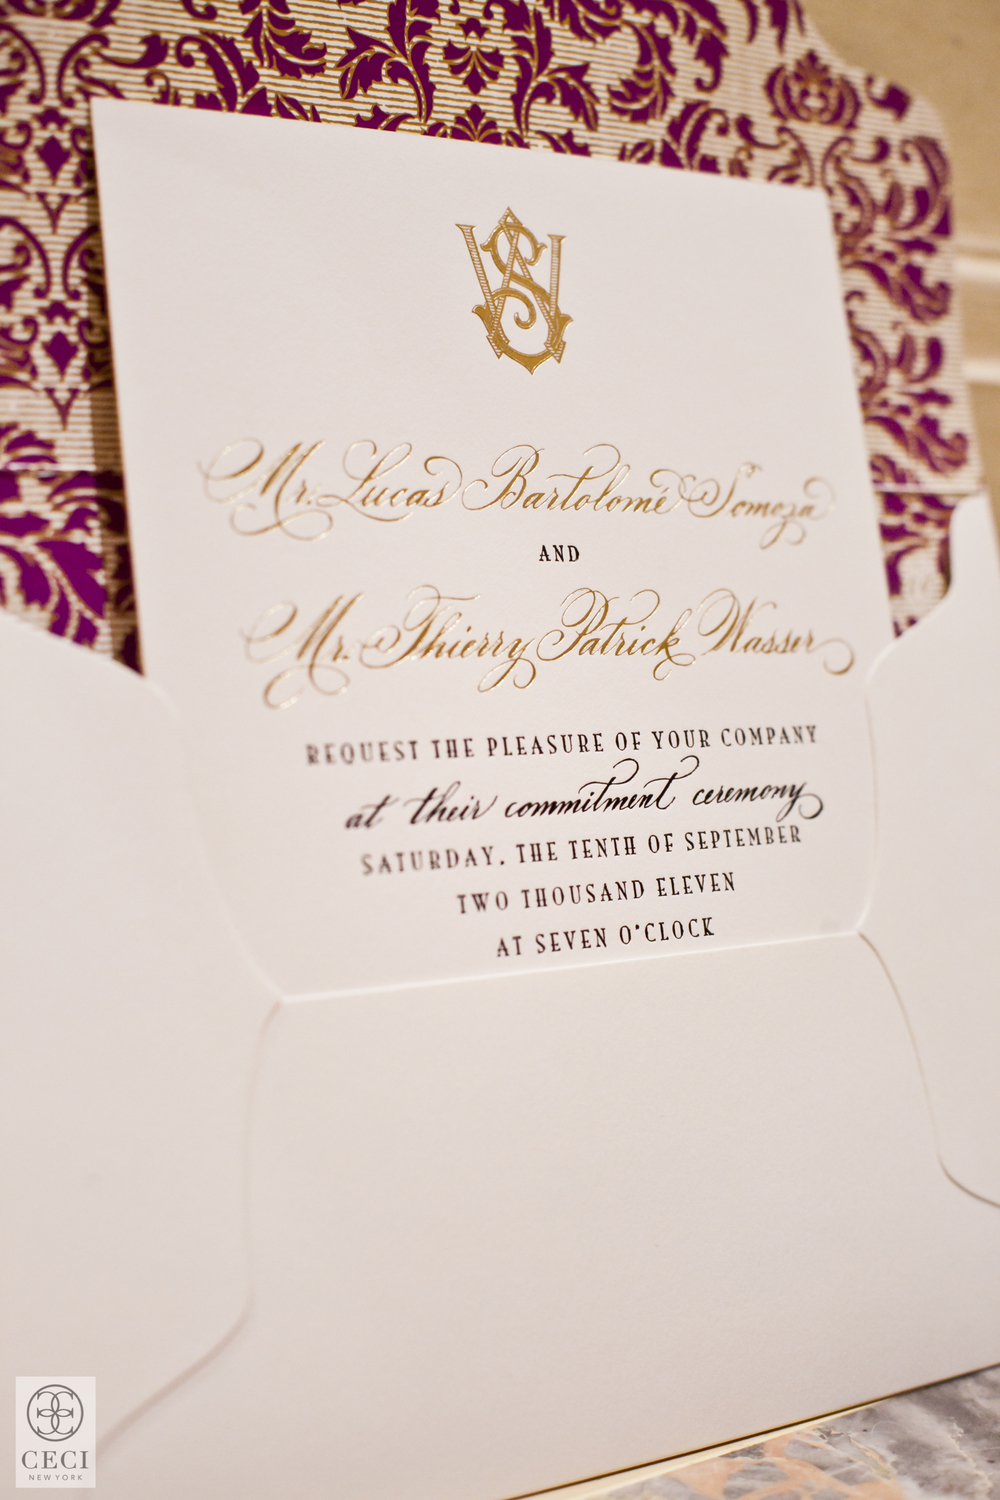 ceci_new_york_lucas_somoza_purple_regal_wediding_birthday_commitment_ceremony_invitation_logo_branding_perfume_gold_-11.jpg